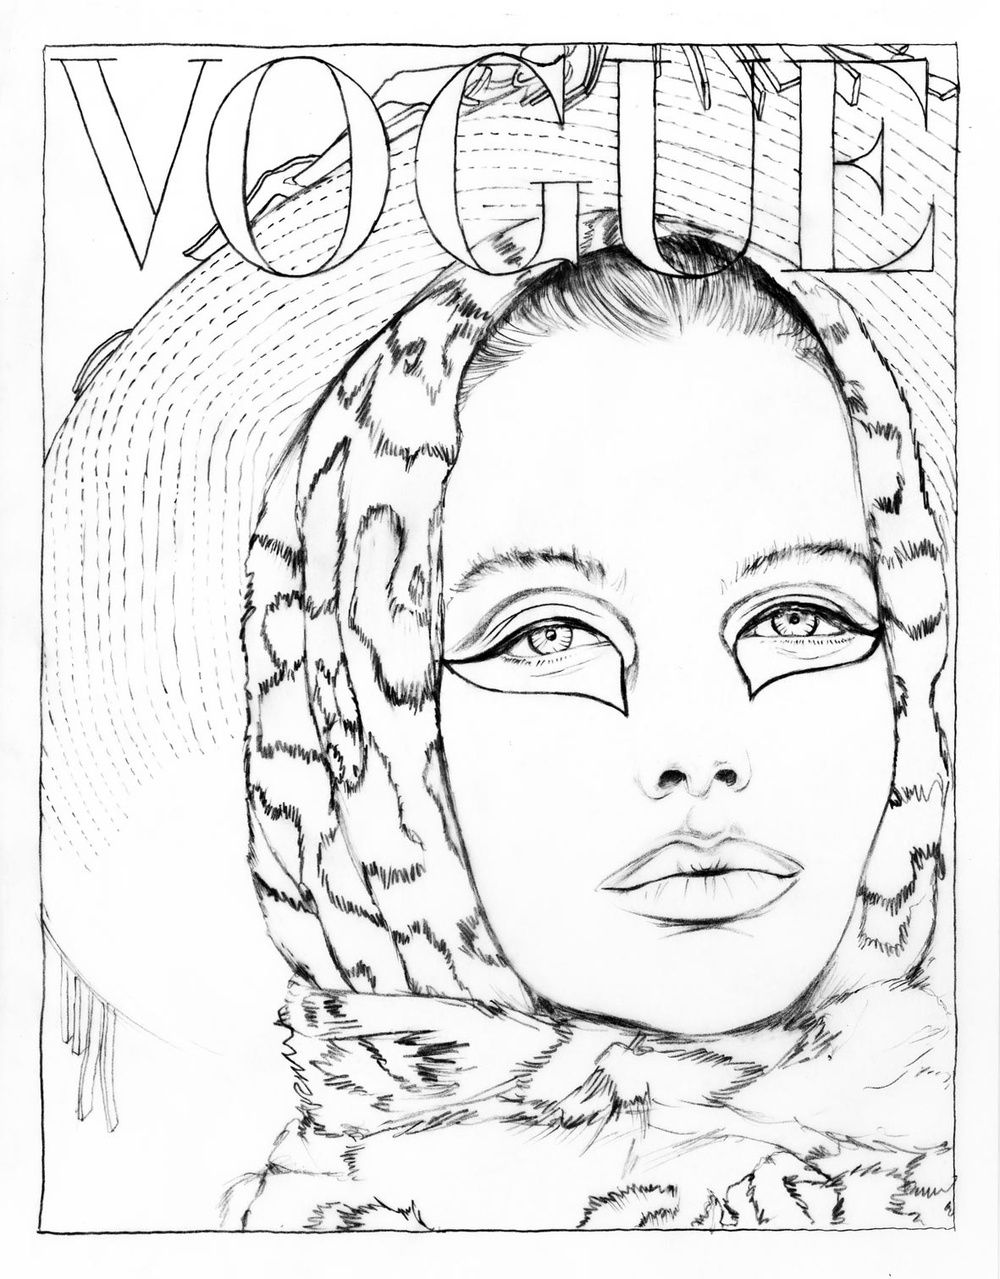 Coloring book yves saint laurent - Get Your Coloring Pencils At The Ready We Ve Chosen Some Of Our Most